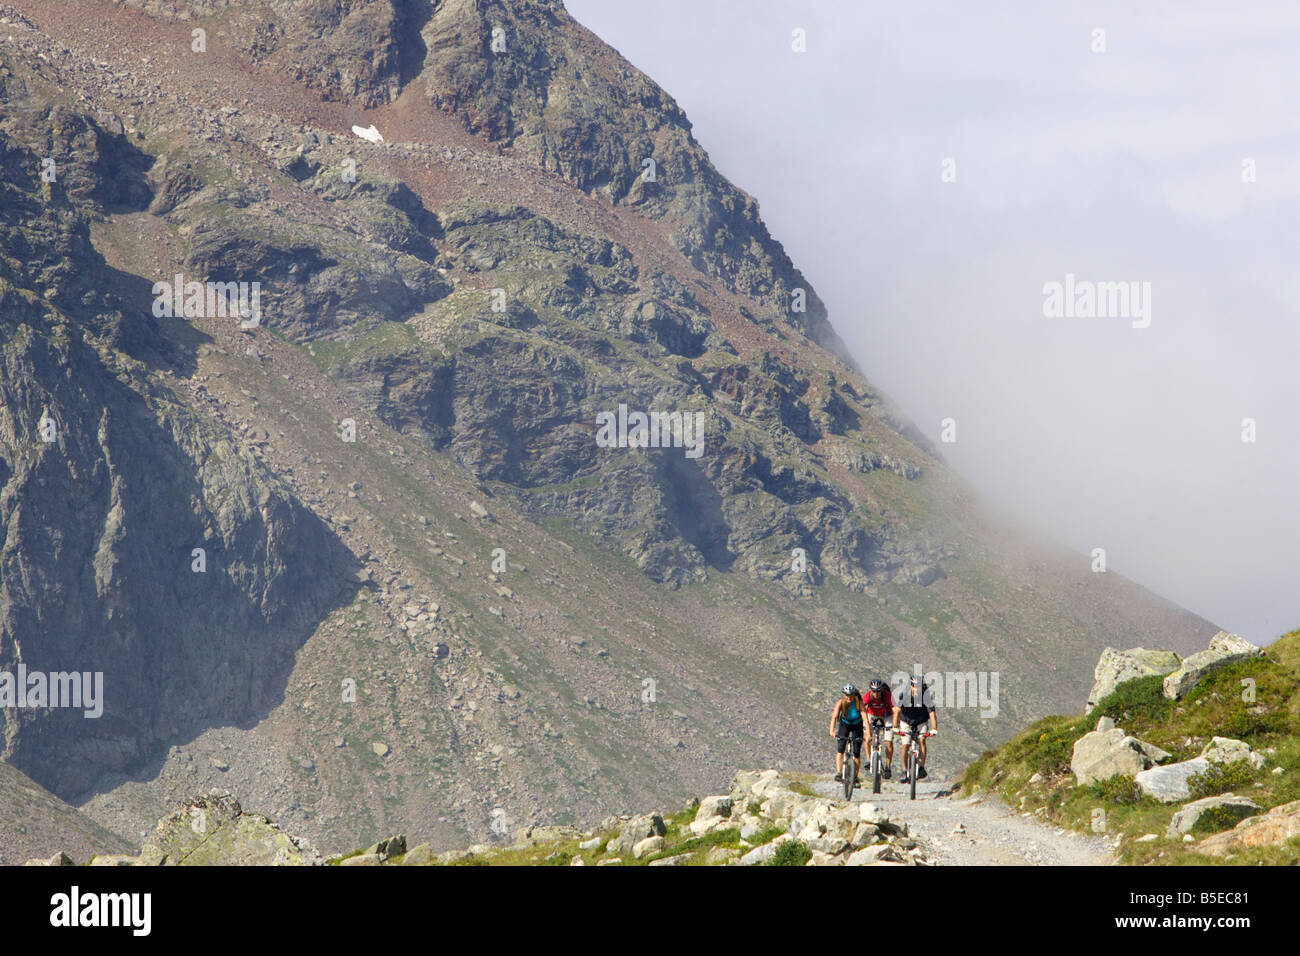 Three cyclists in a mountain coulisse - Stock Image